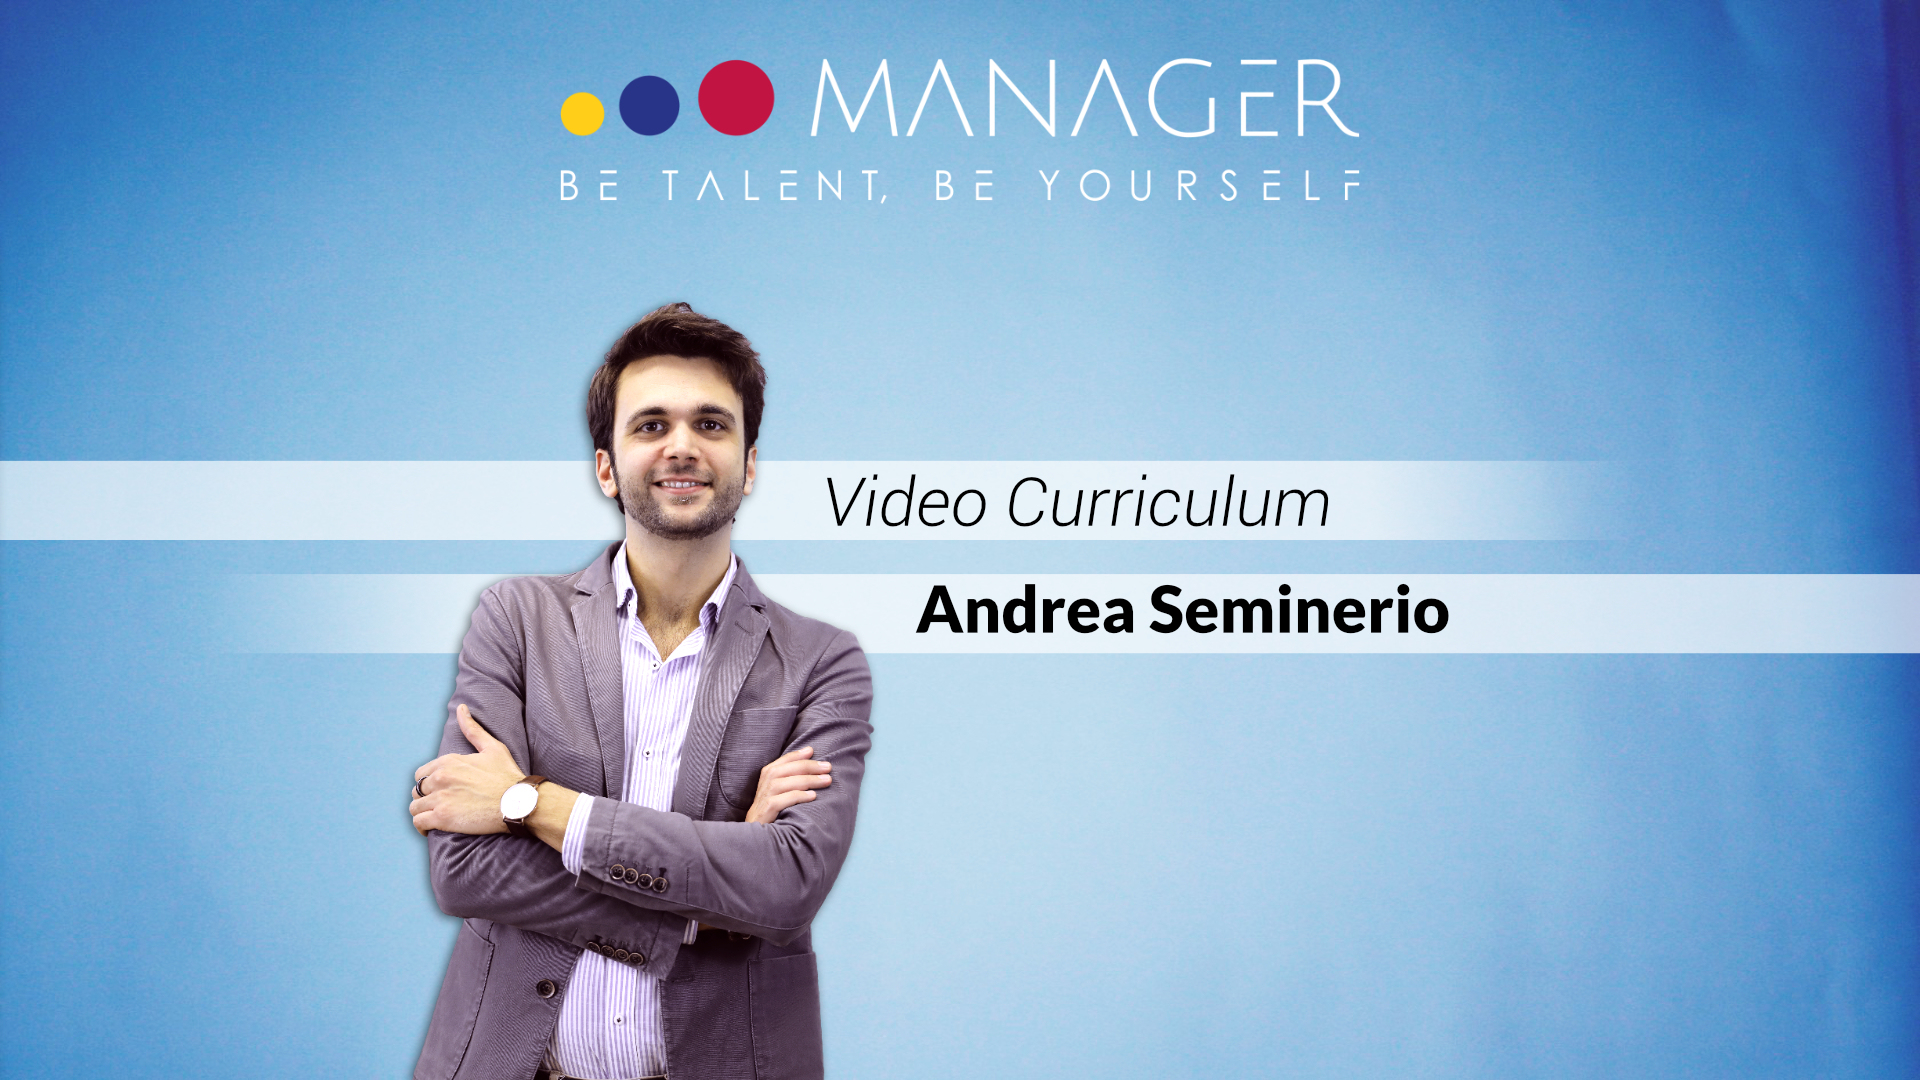 video curriculum Andrea Seminerio